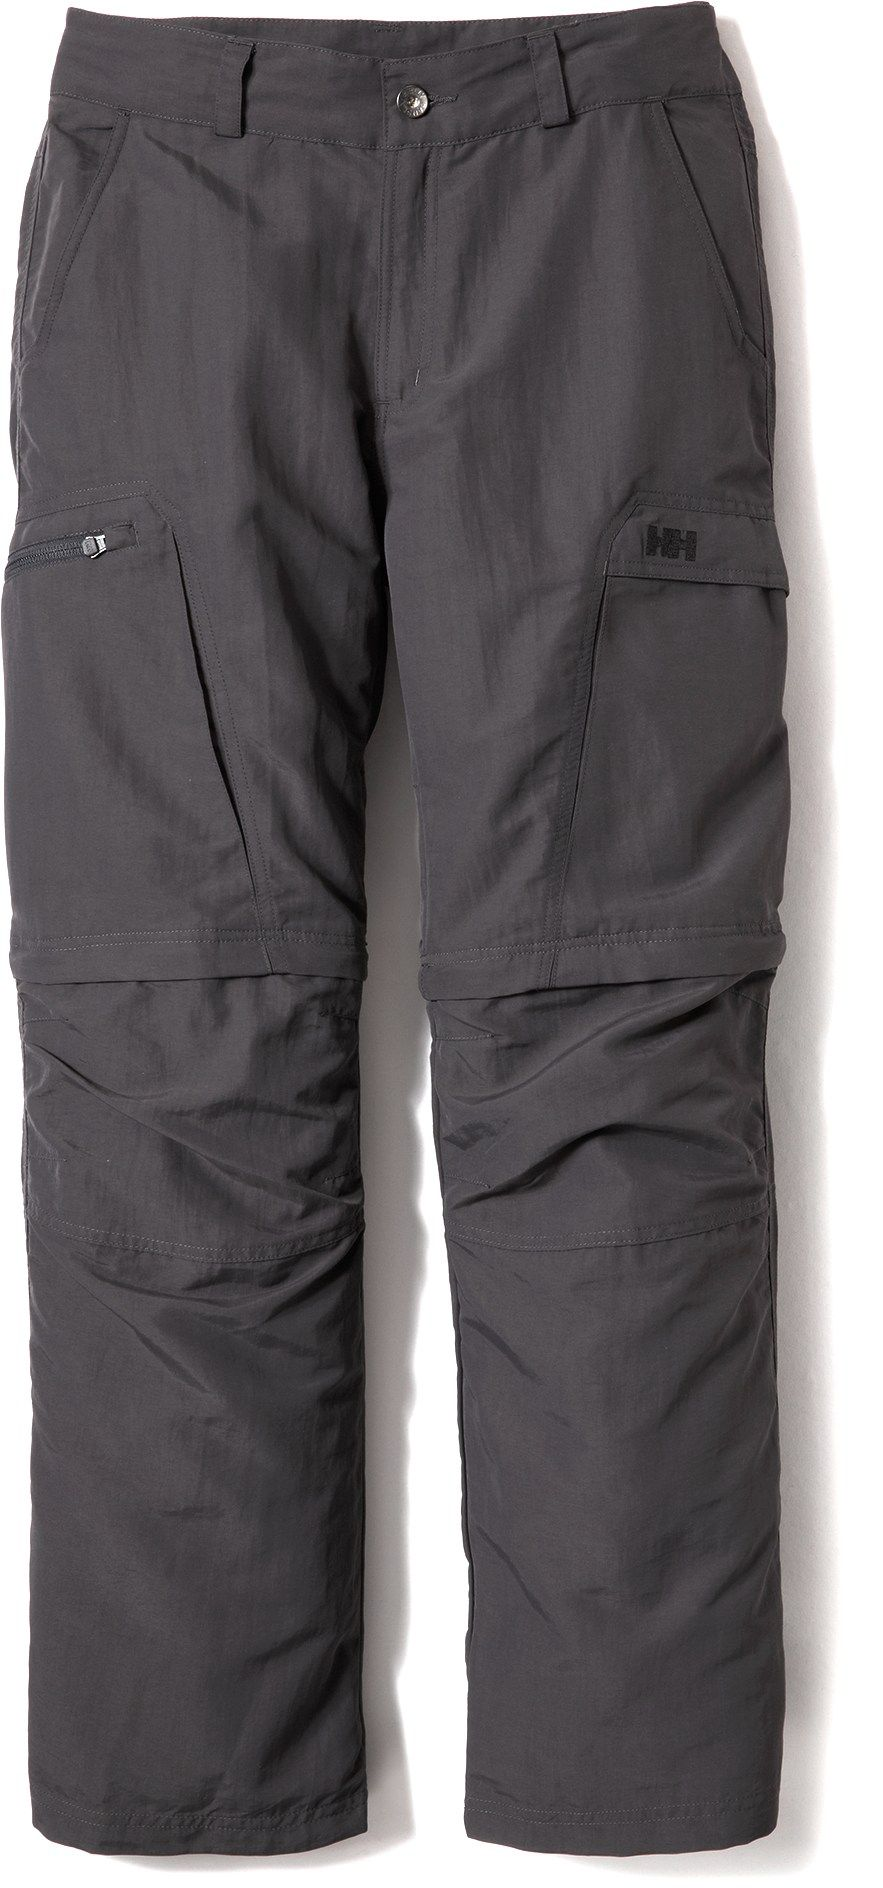 Helly Hansen Male Converter Zip Off Pants Men S Hiking Pants Mens Mens Pants Outdoor Pants